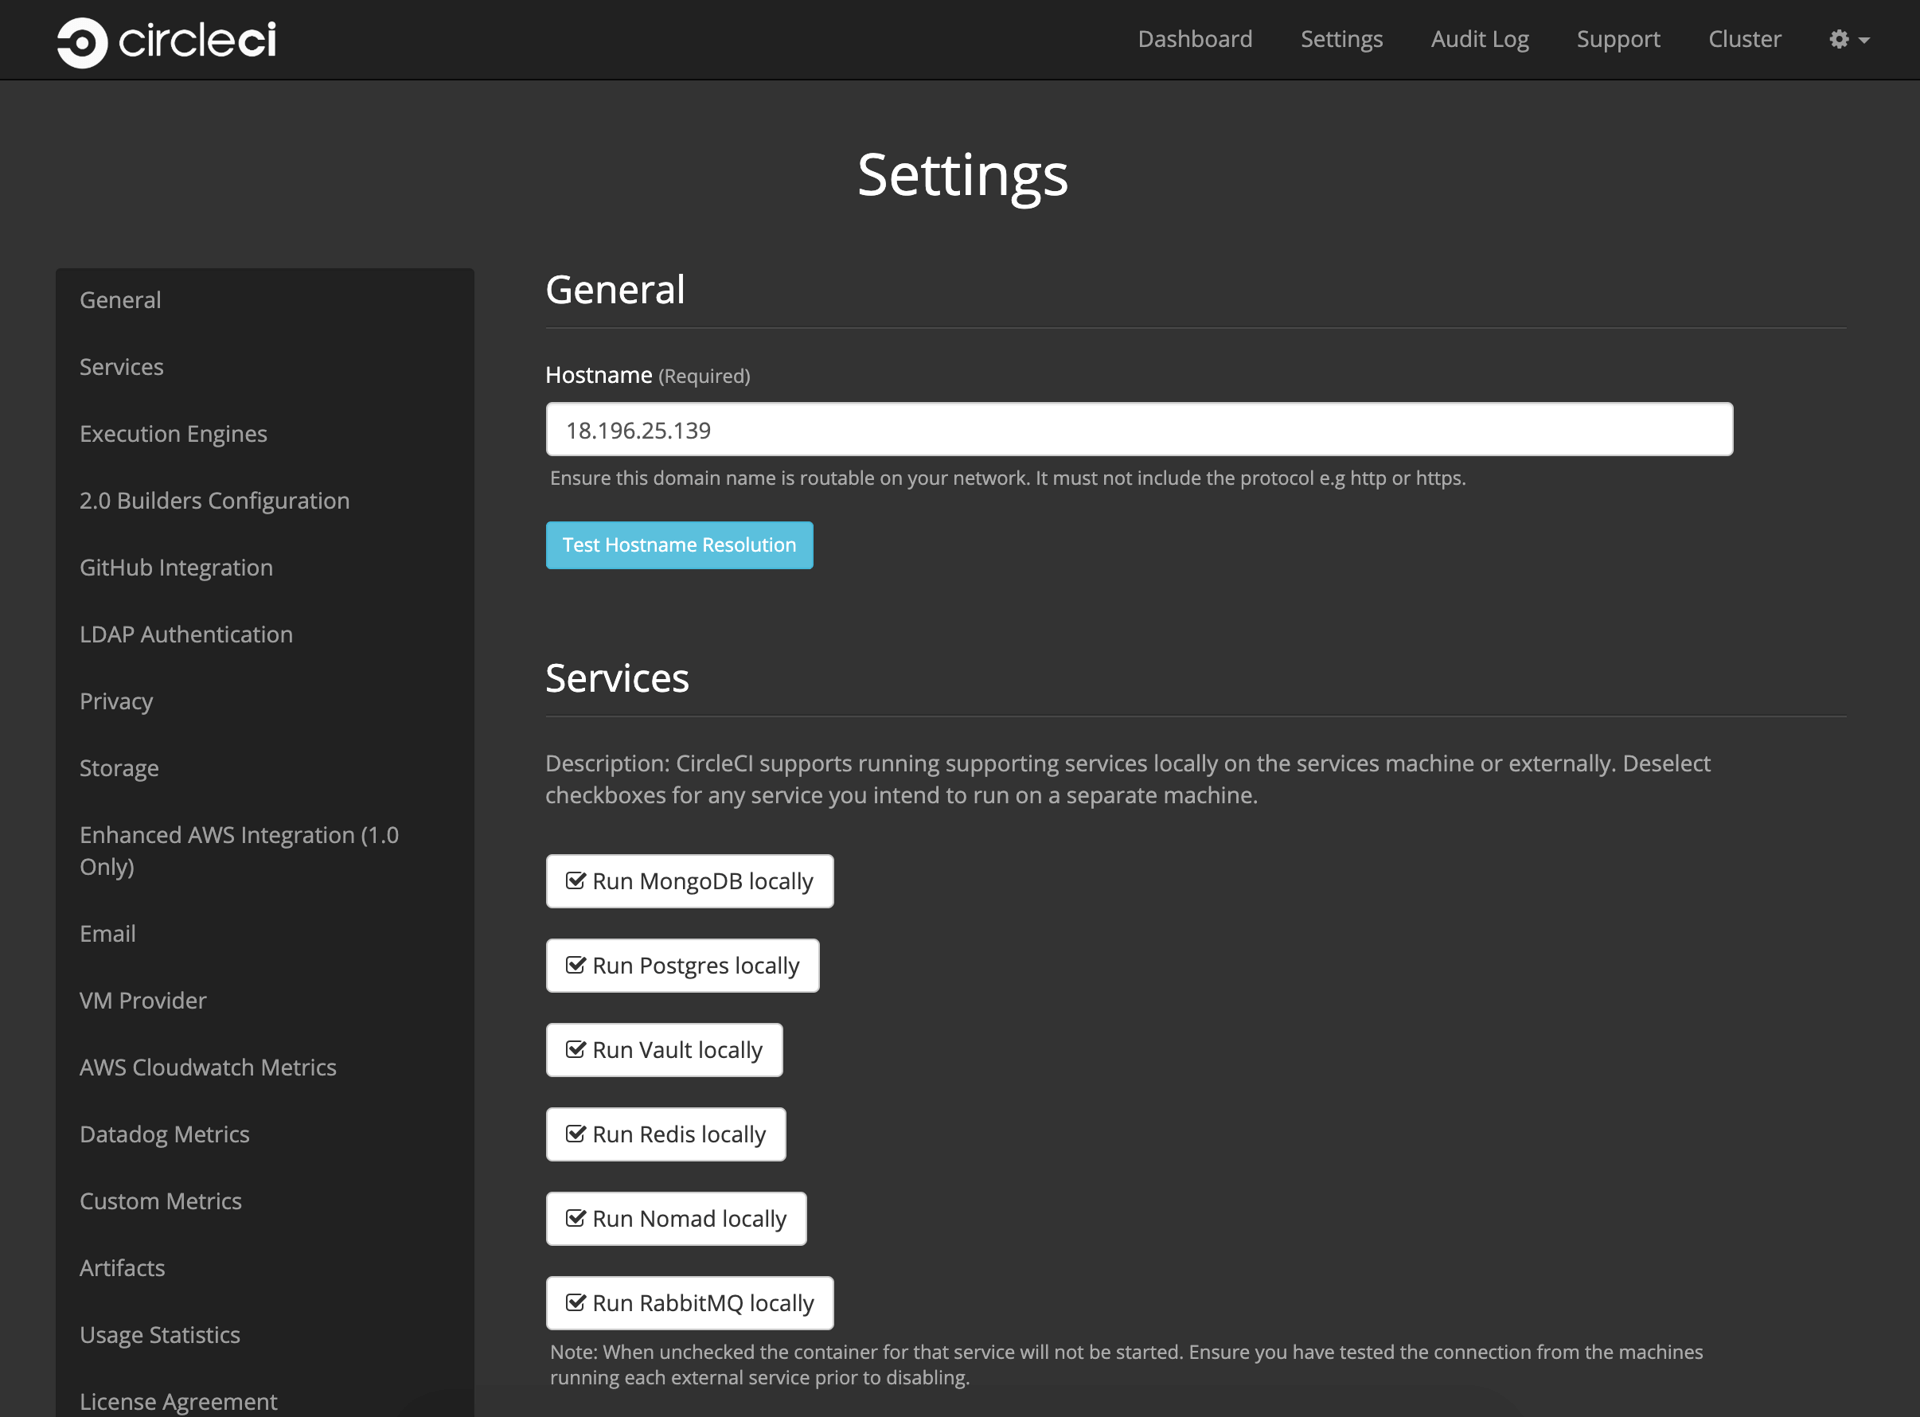 Hostname and Services Settings